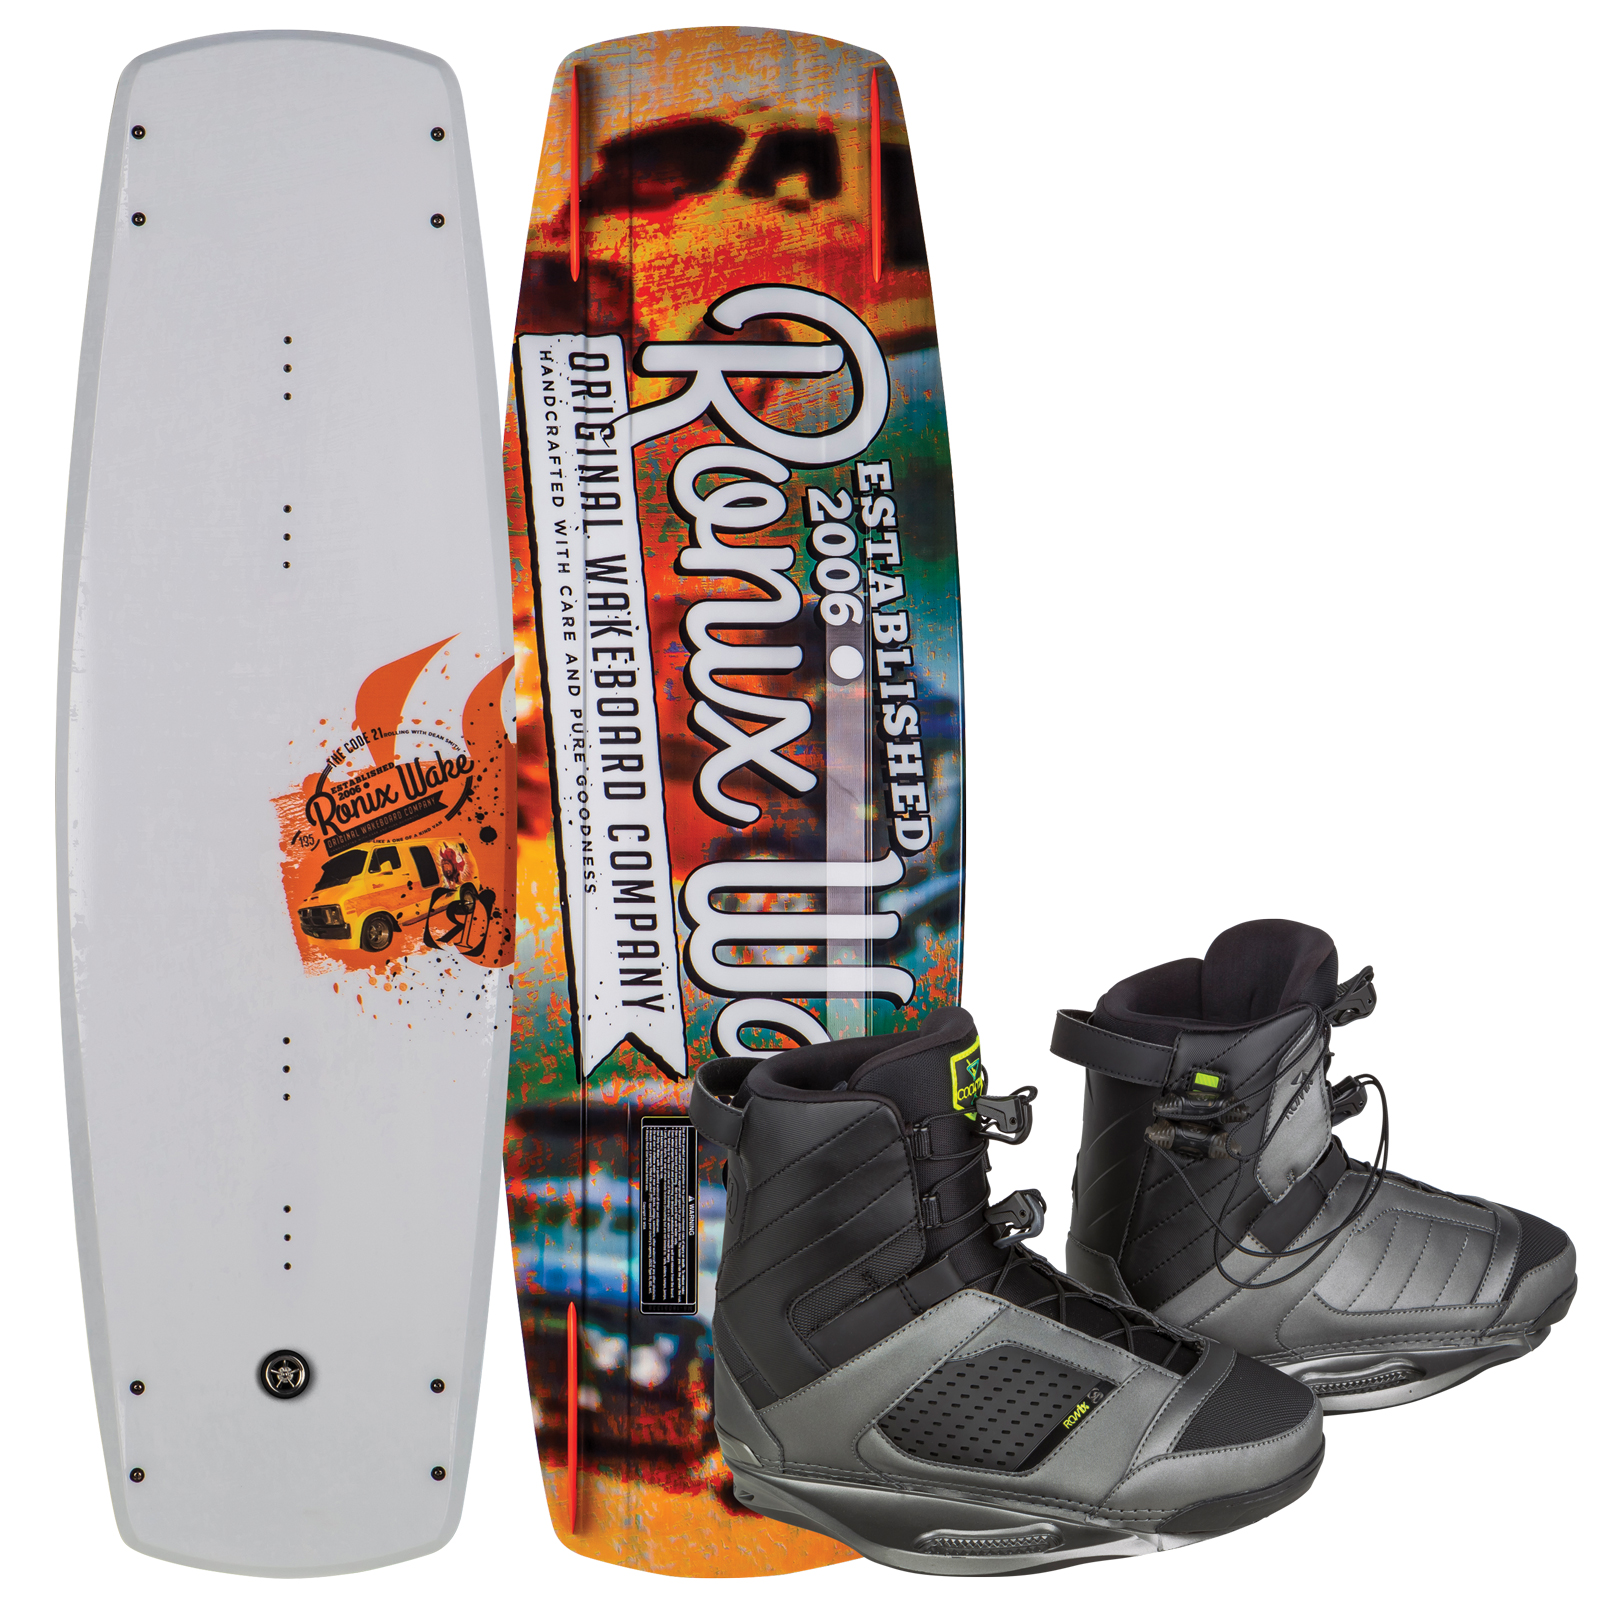 CODE 21 135 W/ COCKTAIL PACKAGE RONIX 2017